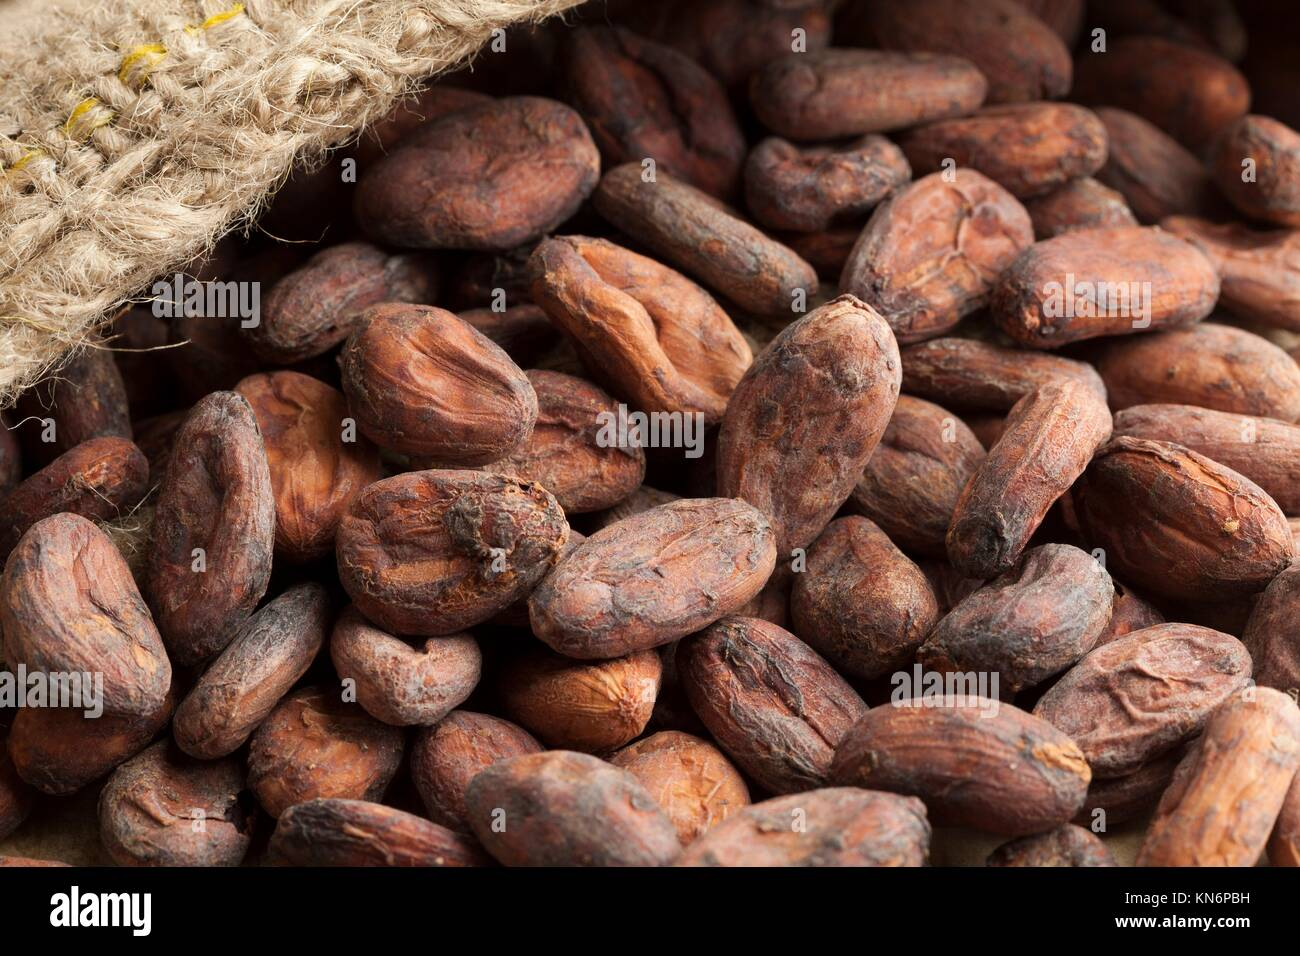 Jute bag full with cocoa beans. - Stock Image